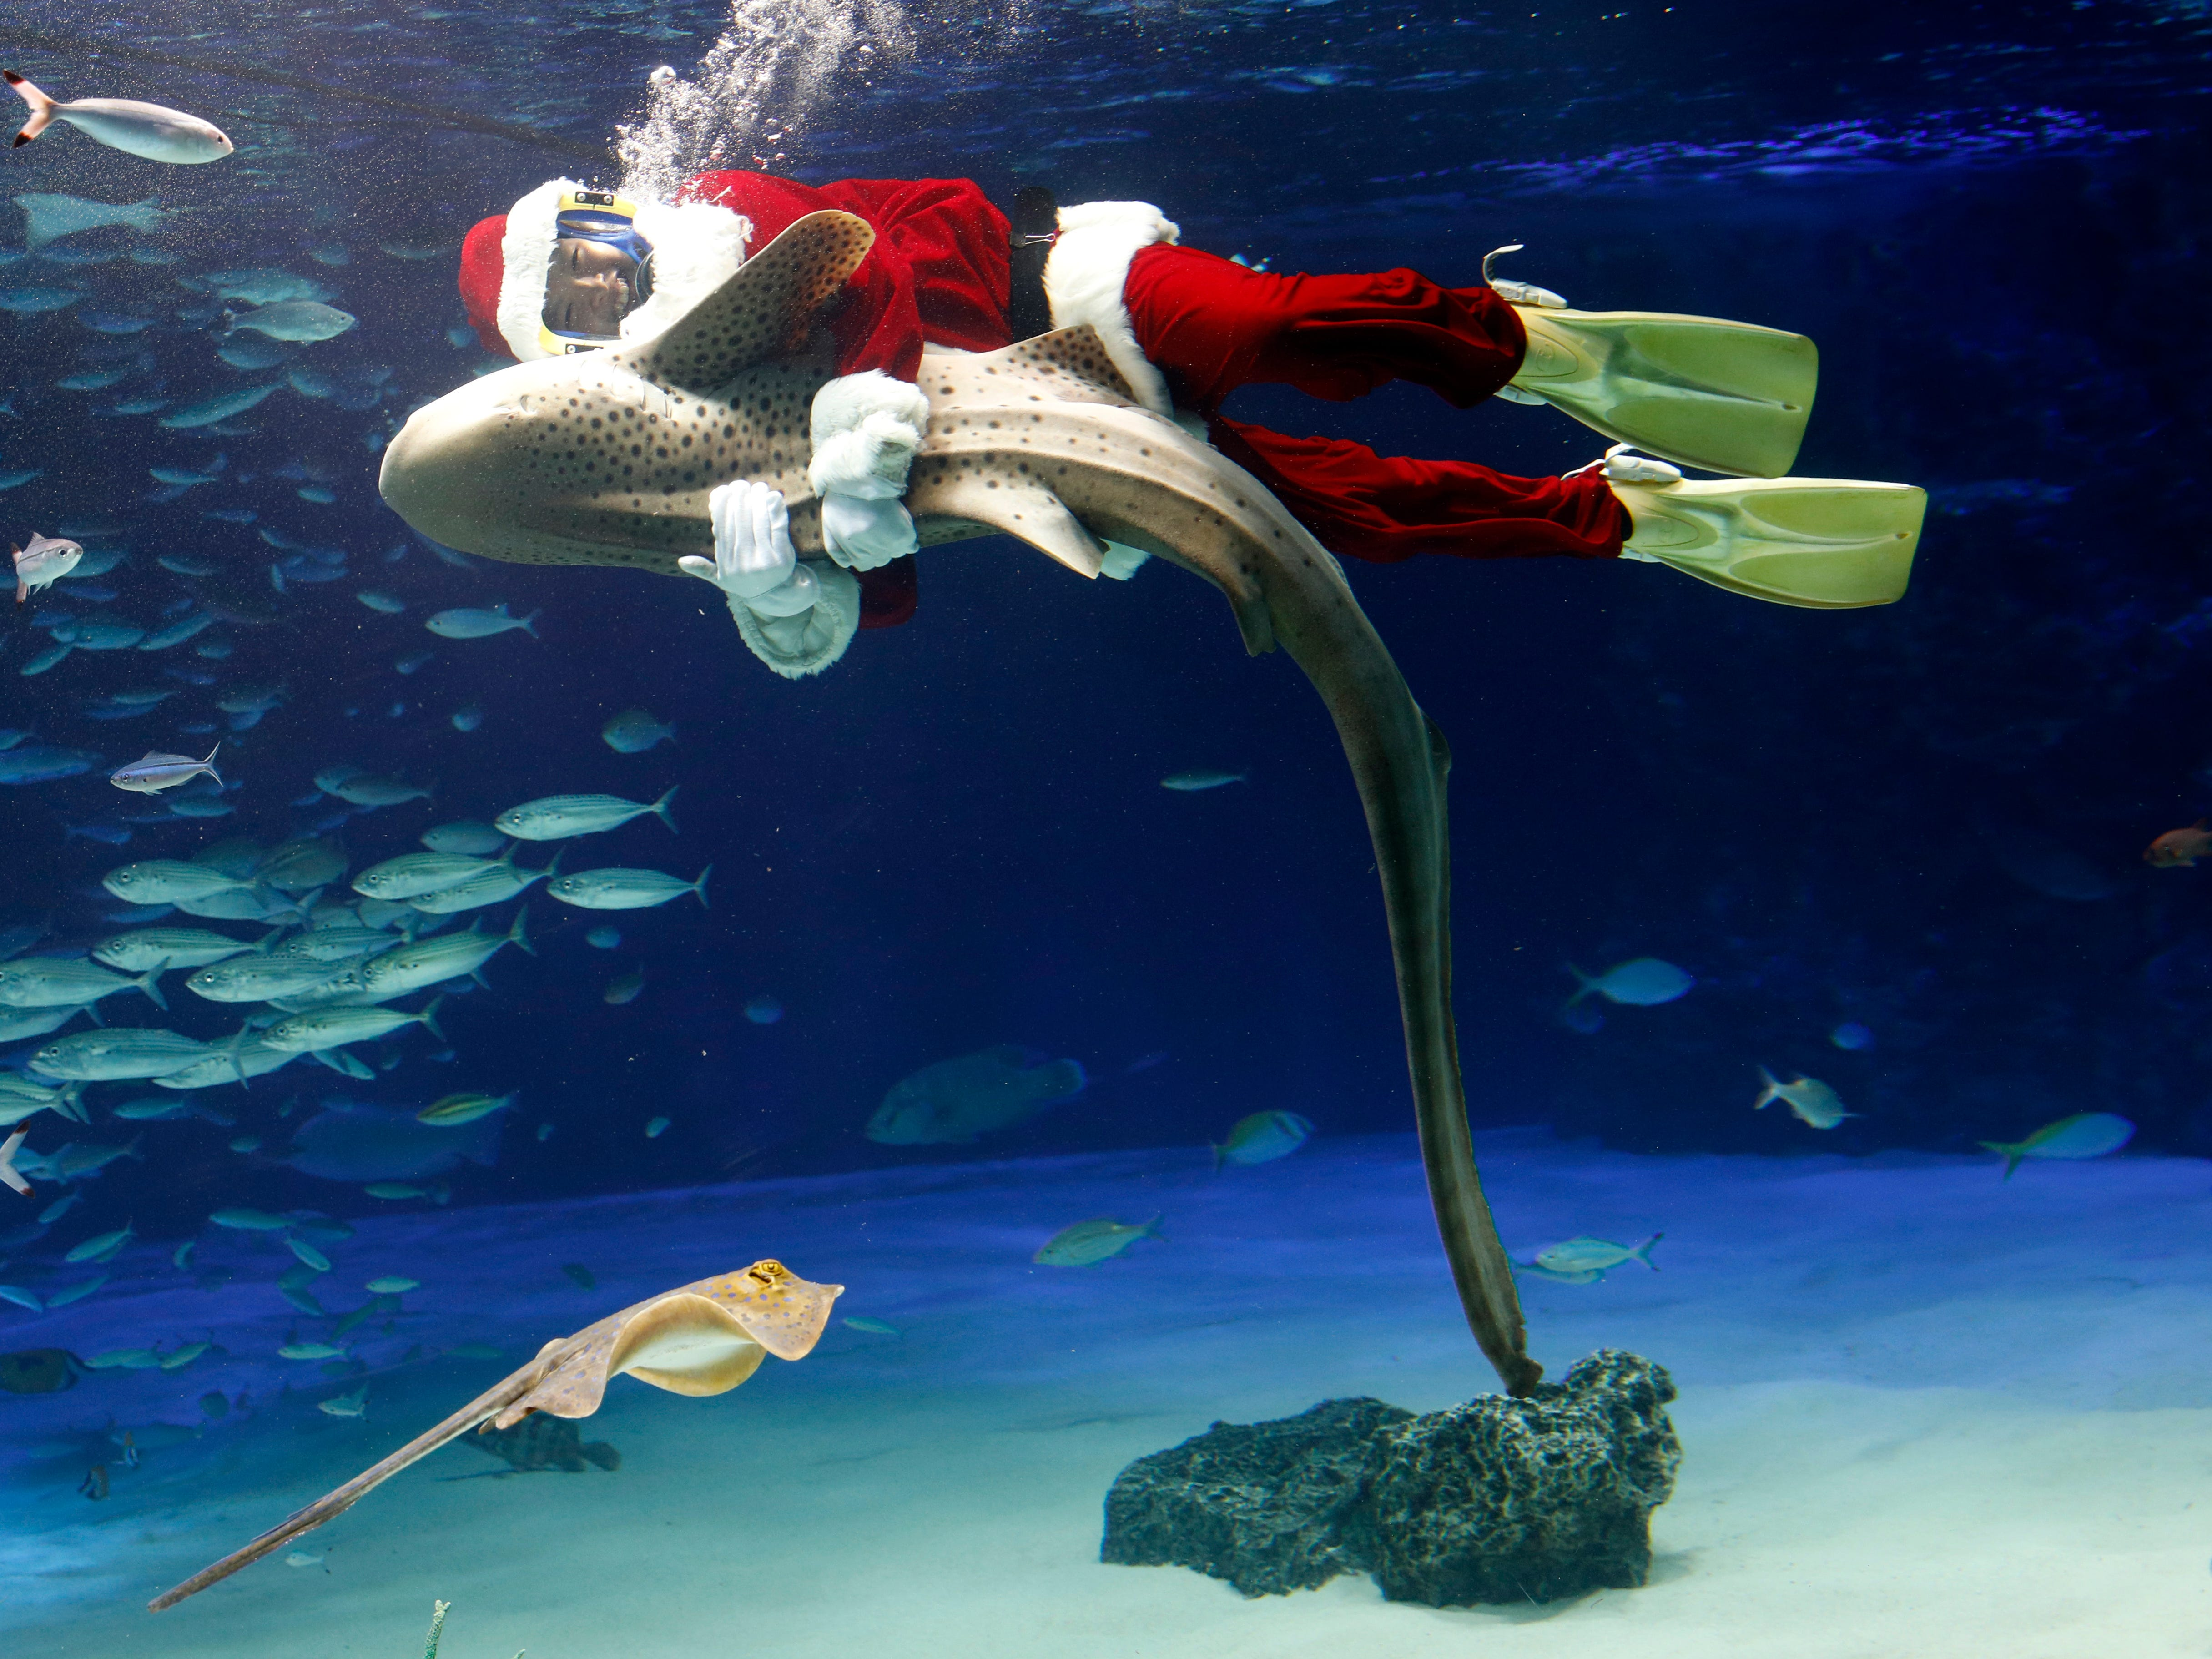 A diver wearing a Santa Claus costume swims with a Zebra shark during an underwater performance at Sunshine Aquarium in Tokyo, Japan on Dec.14, 2018. The show will be held until Christmas day.